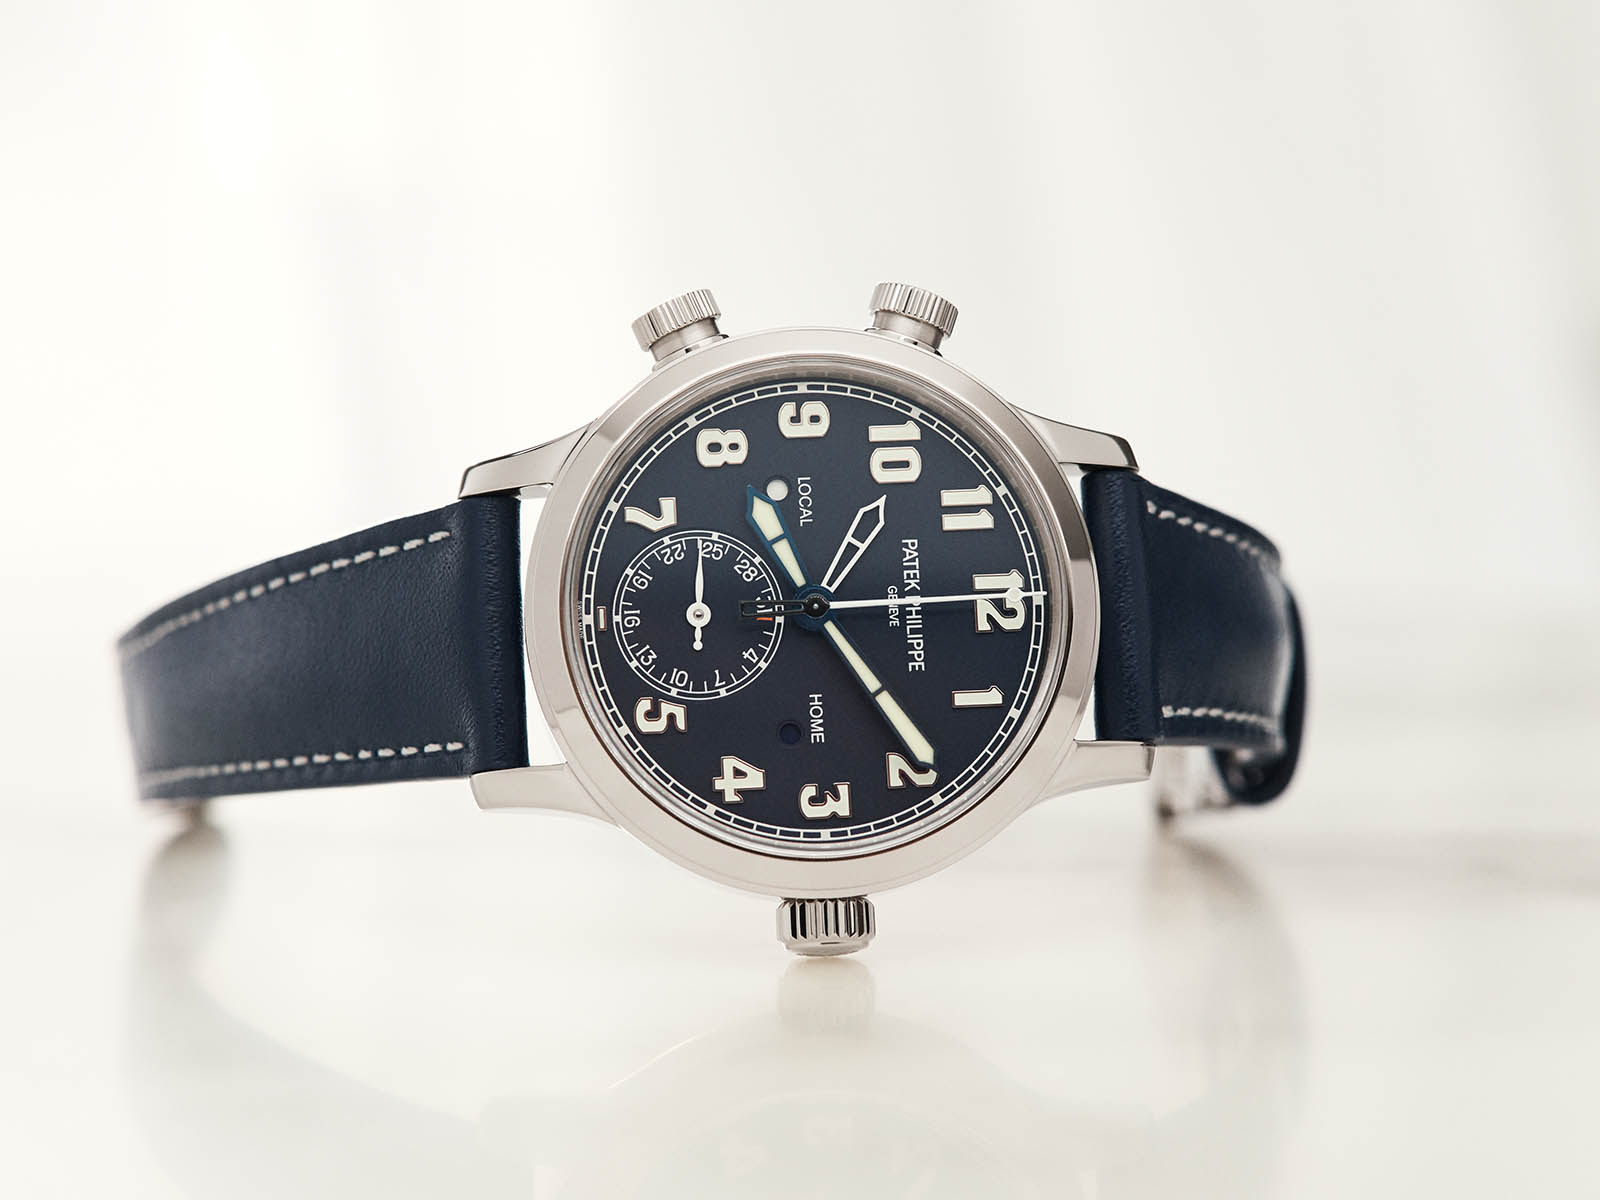 7234g-001-patek-philippe-calatrava-pilot-travel-time-1.jpg